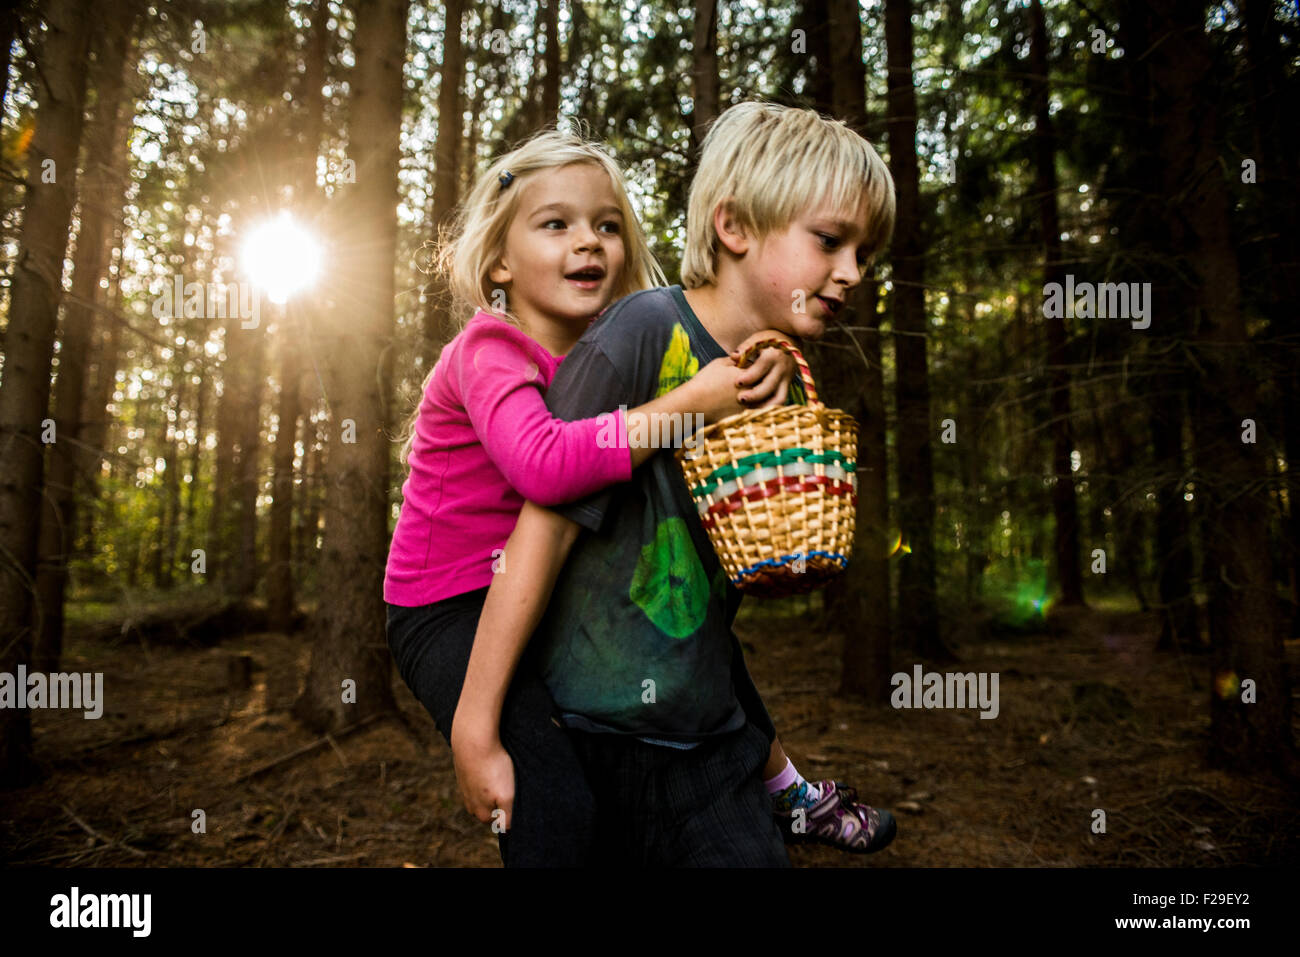 362dd0826 Young boy giving young girl piggyback outdoors smiling